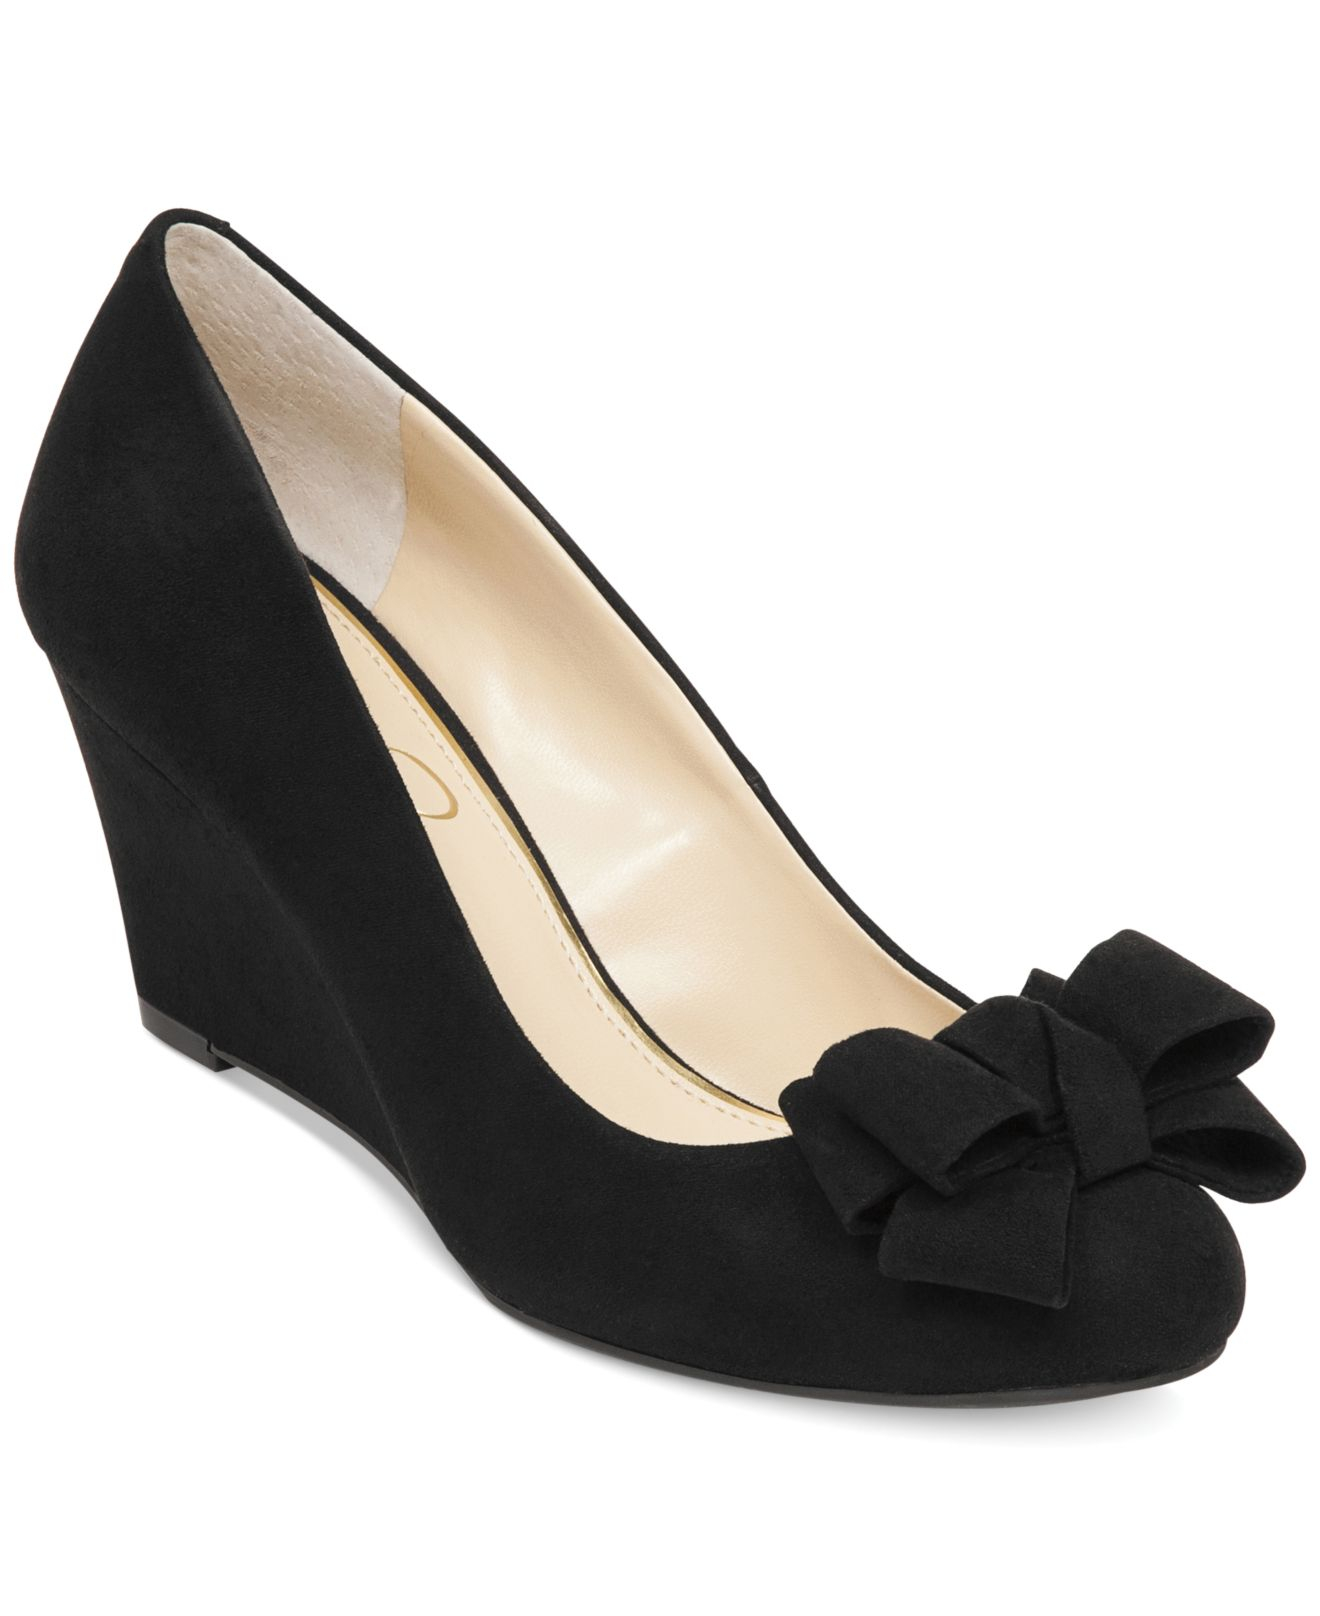 Jessica simpson Sheryl Bow Wedges in Black | Lyst